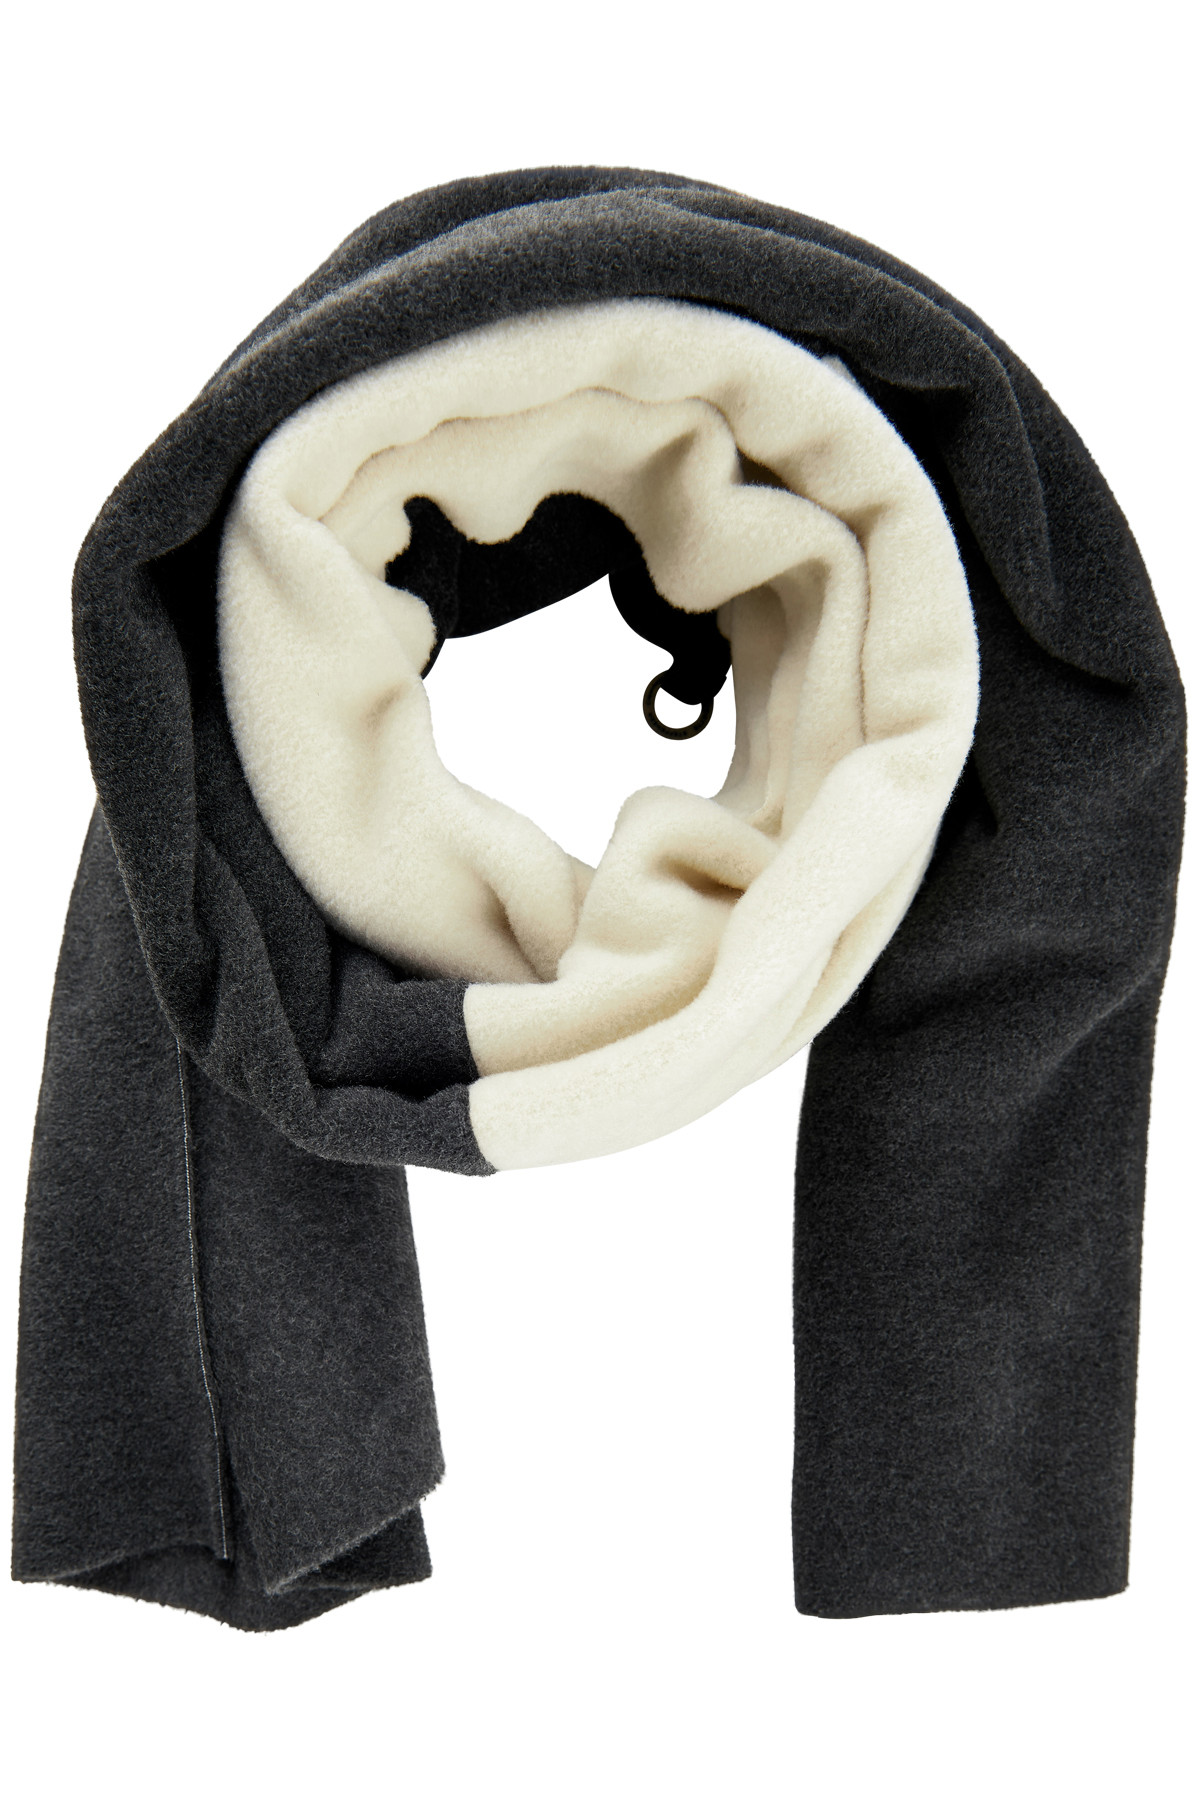 Image of   HENRIETTE STEFFENSEN Copenhagen 4063 TØRKLÆDE SOFT BLACK/WINTER WHITE (Soft Black/Winter W/Soft Black, ONESIZE)